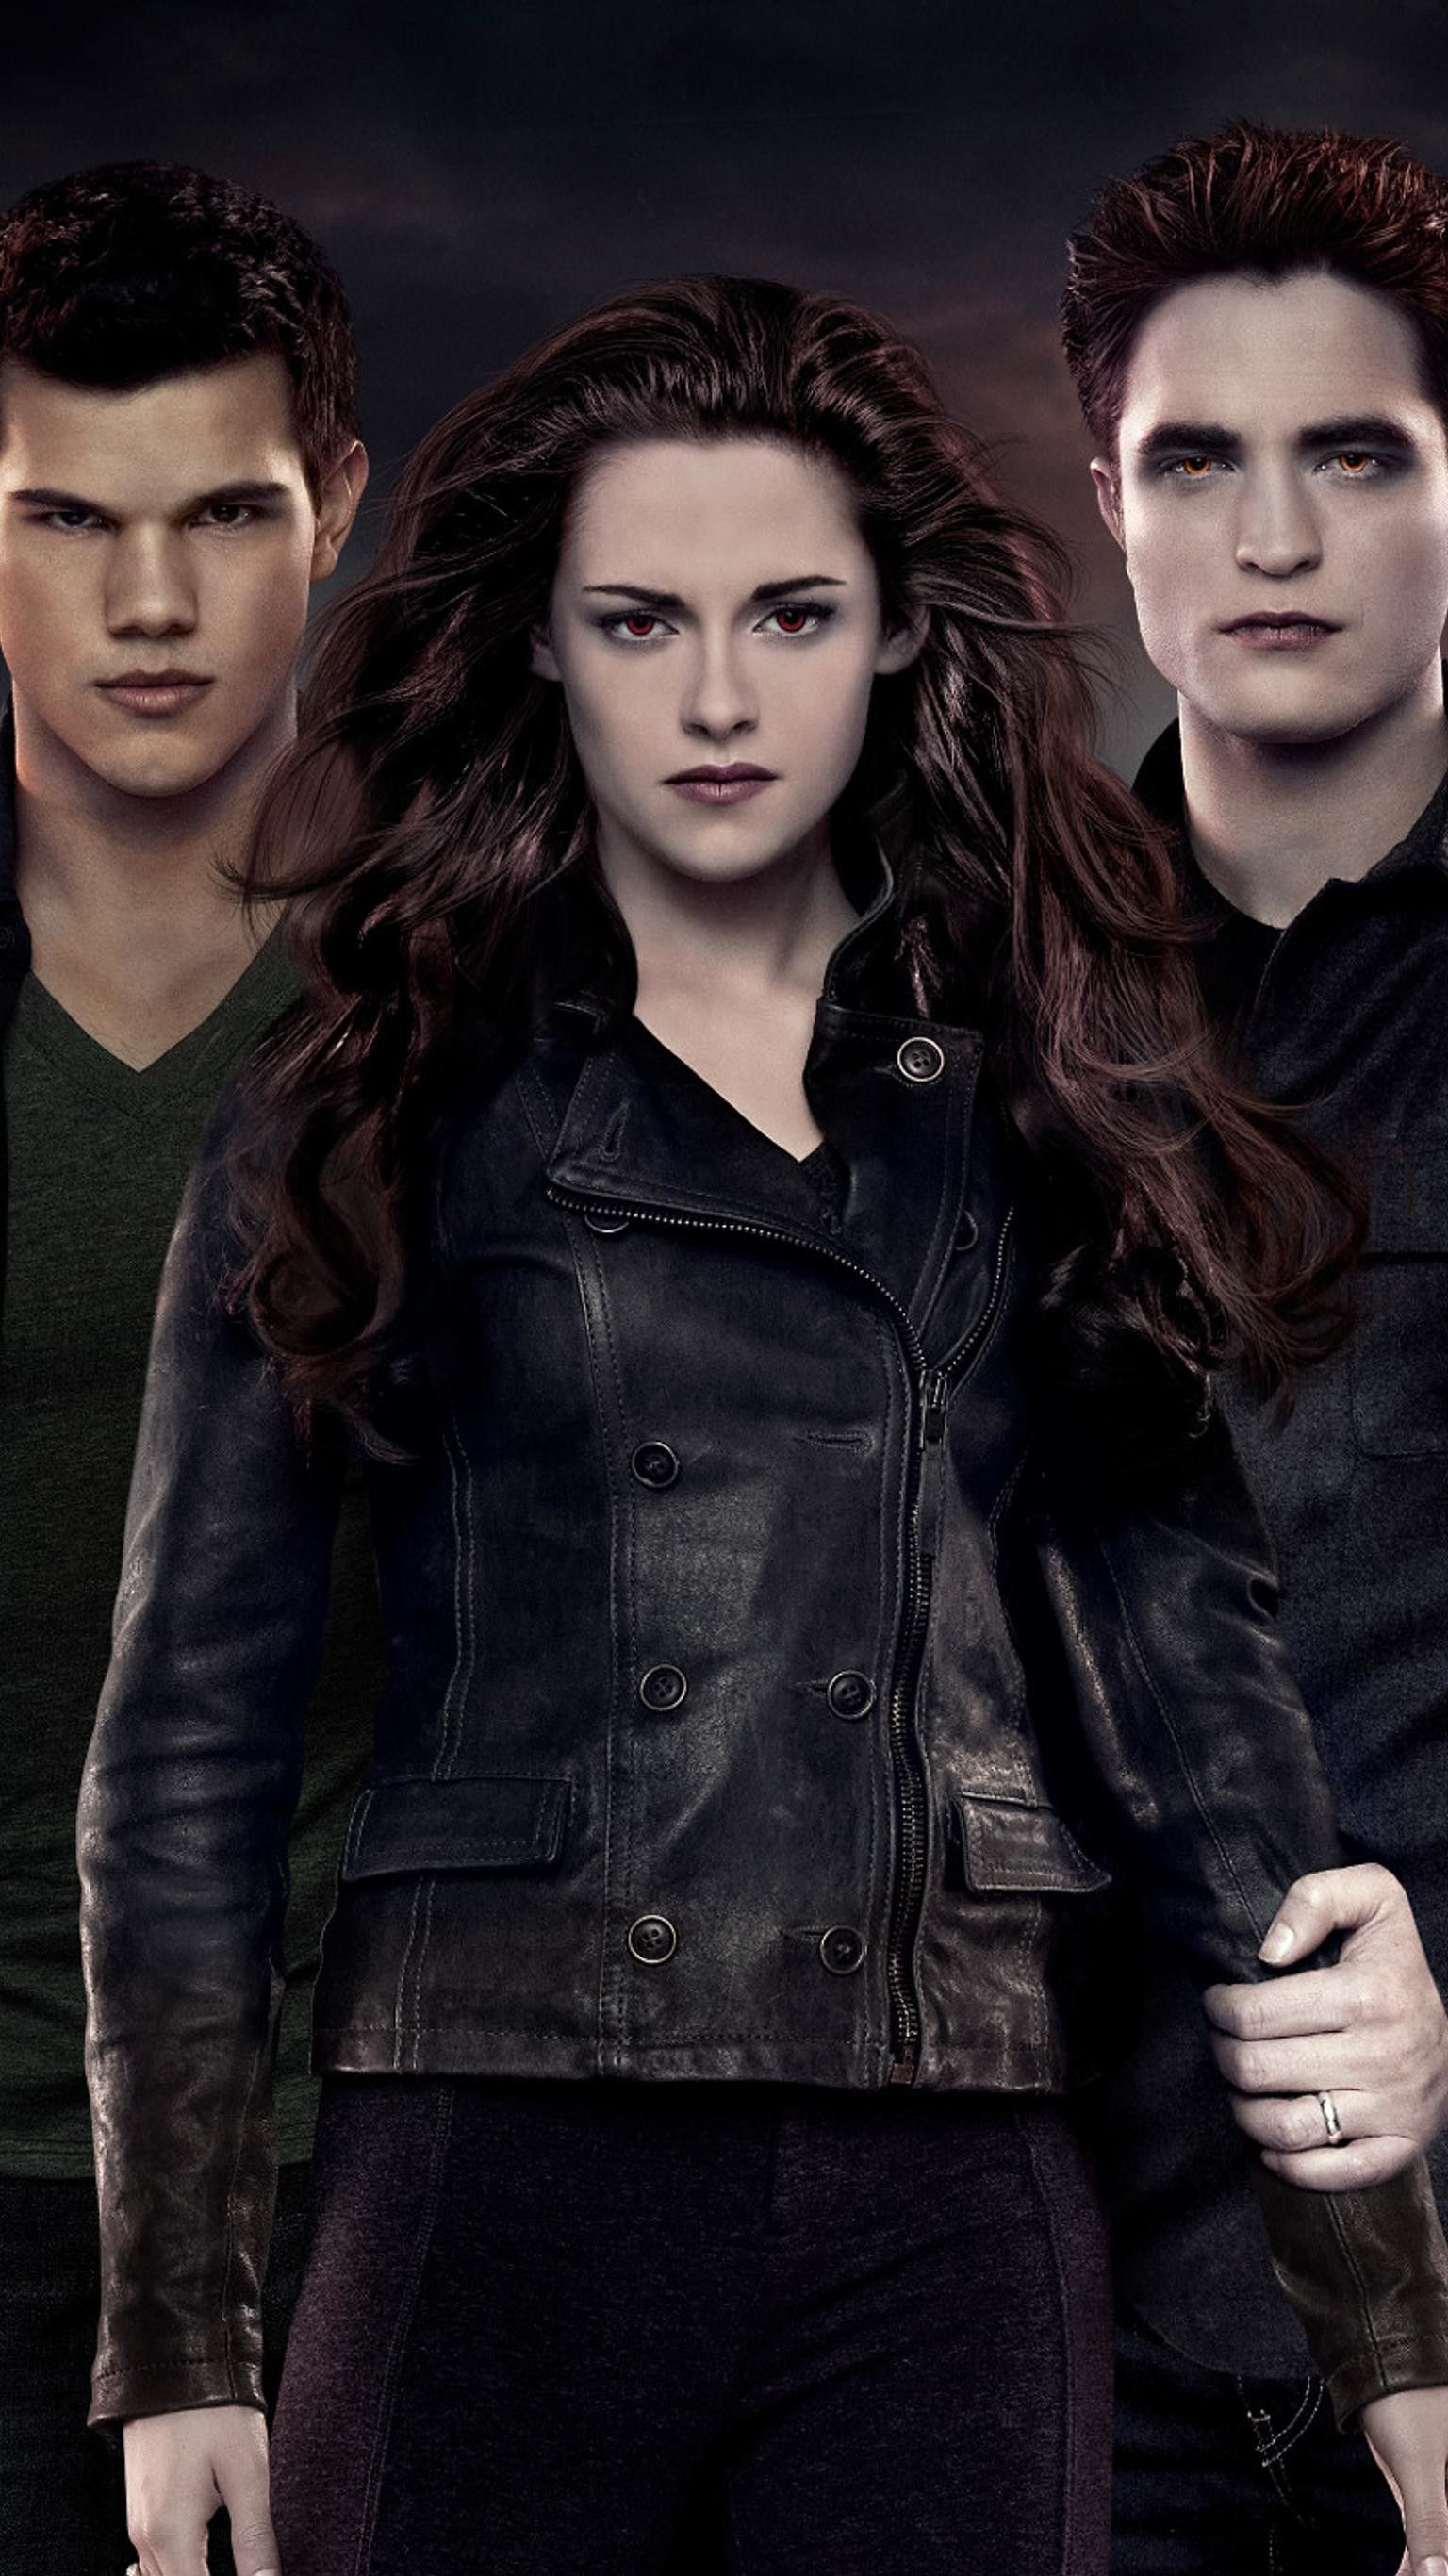 Res 1536x2732 Wallpaper For The Twilight Saga Breaking Dawn Part 2 Twilight Saga Twilight Saga Books Twilight Pictures